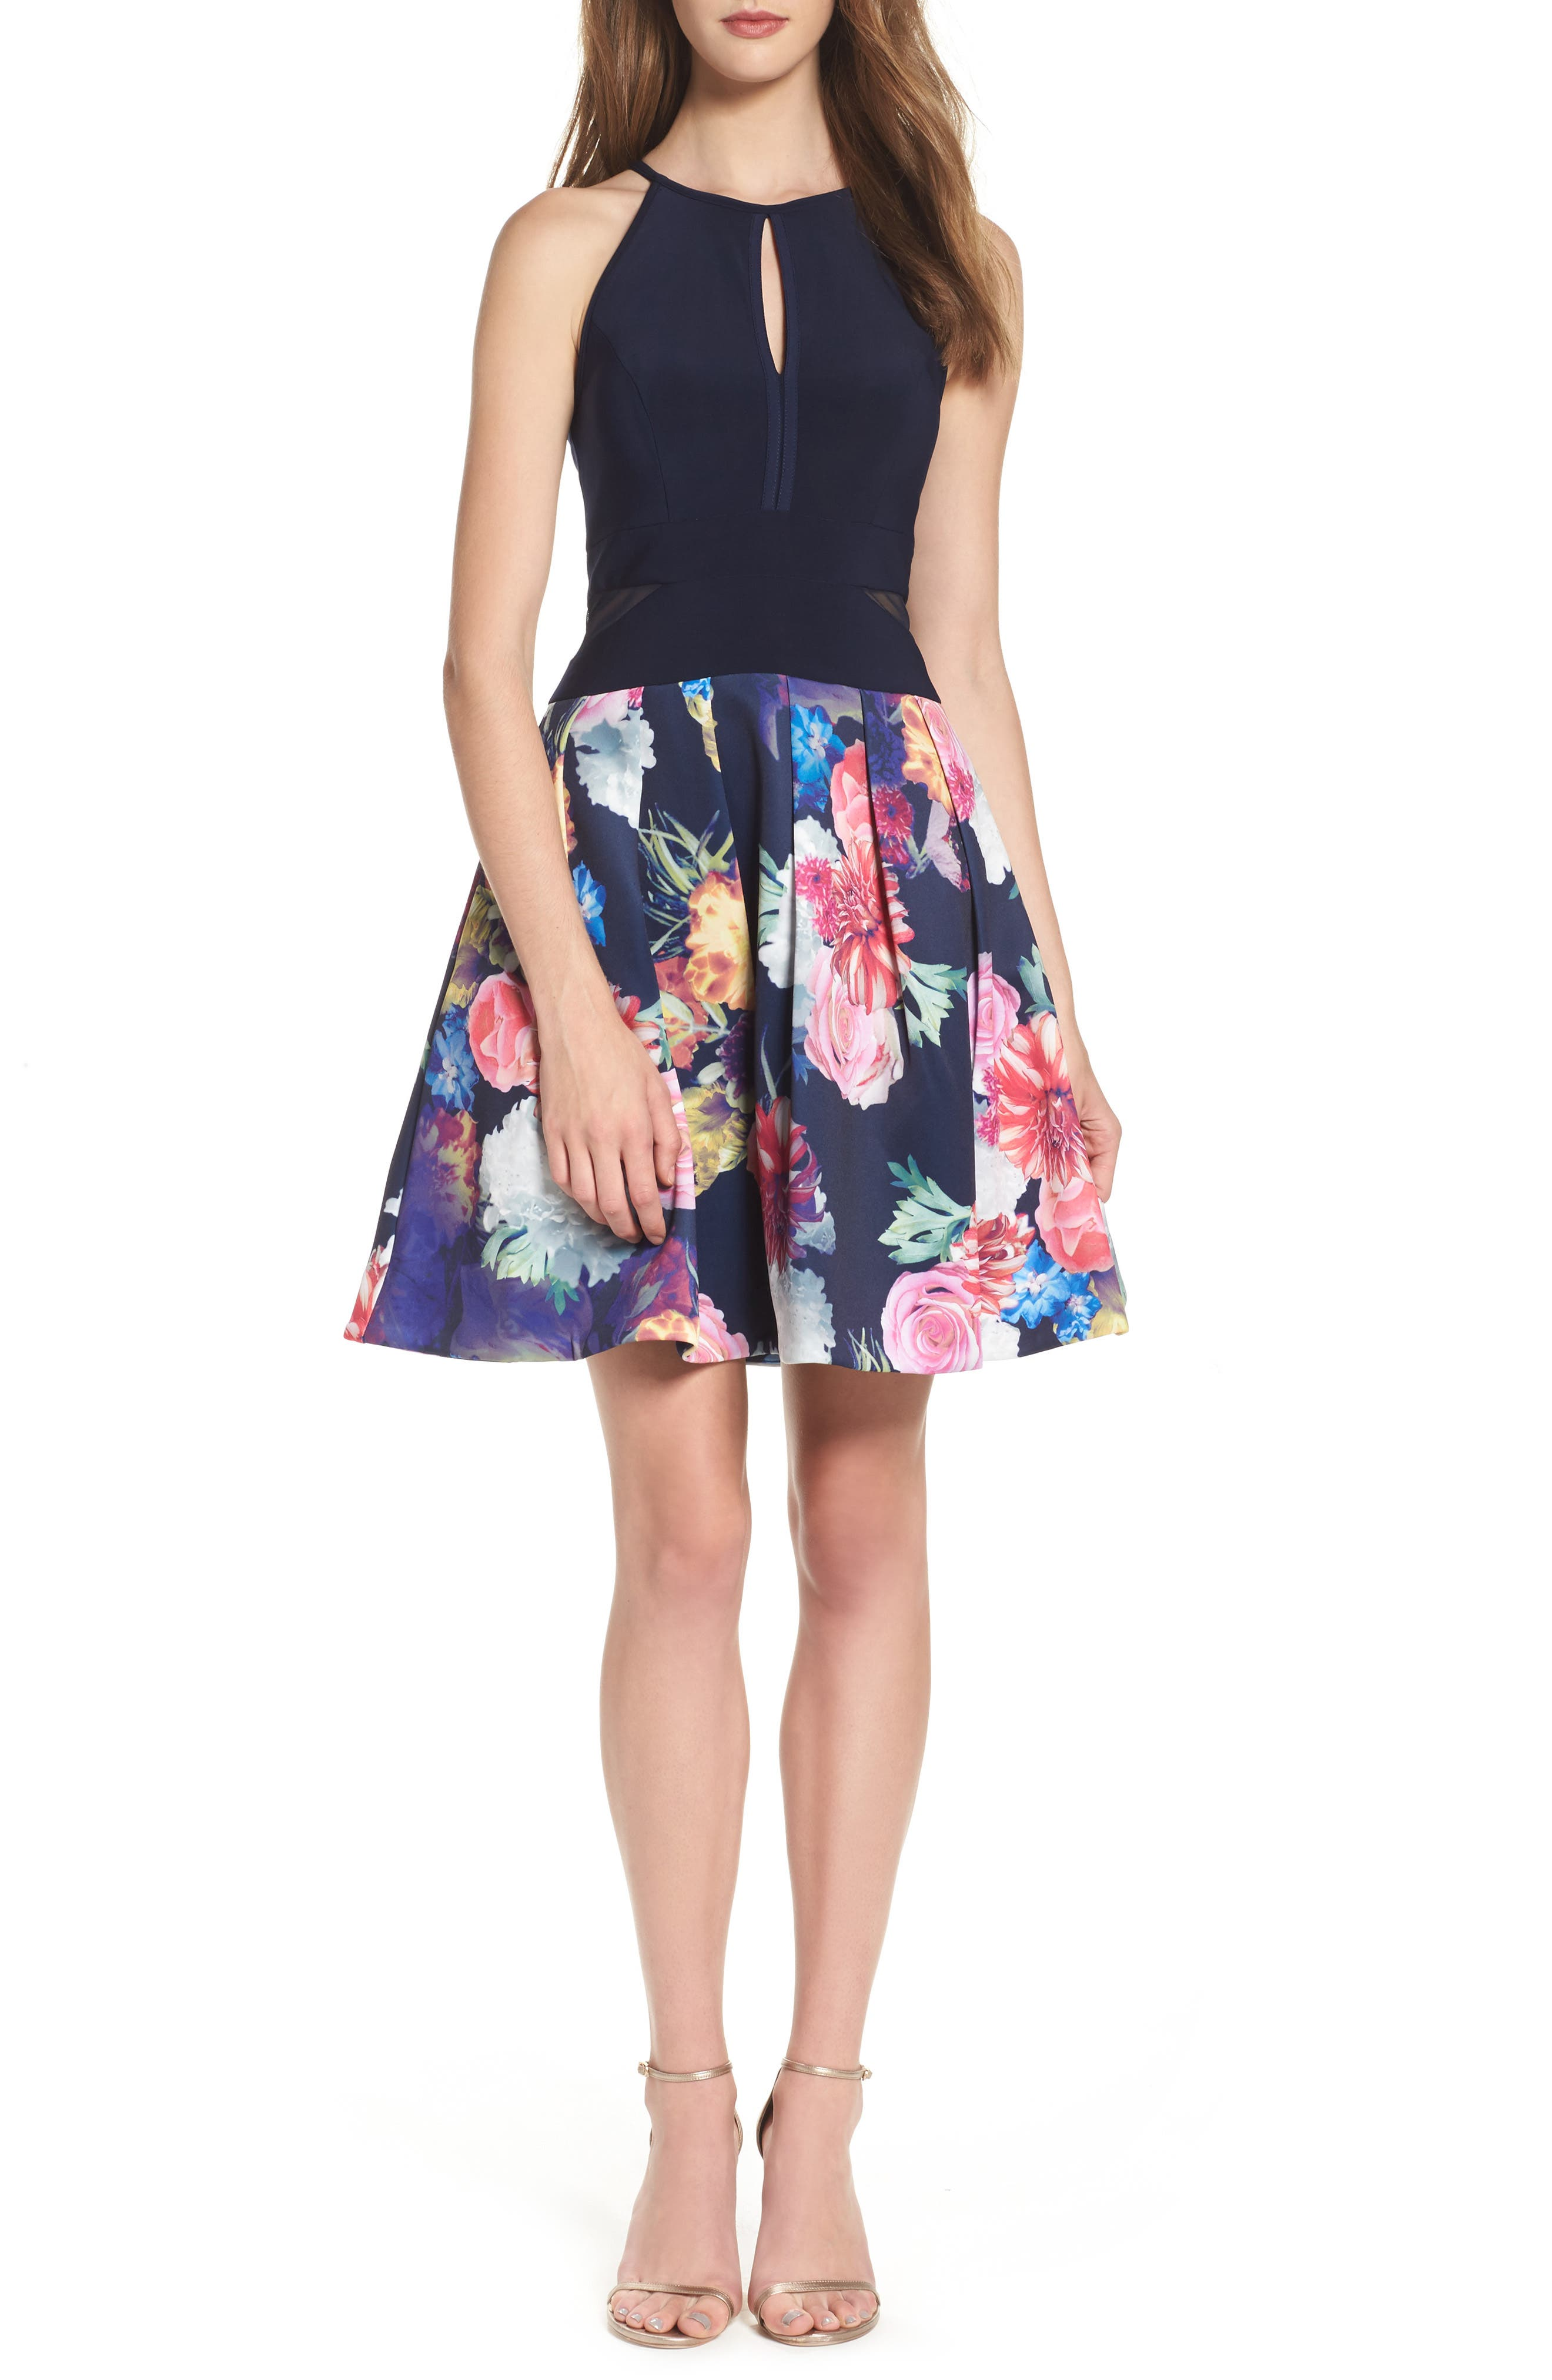 Keyhole Mixed Media Party Dress,                             Main thumbnail 1, color,                             Navy/ Pink